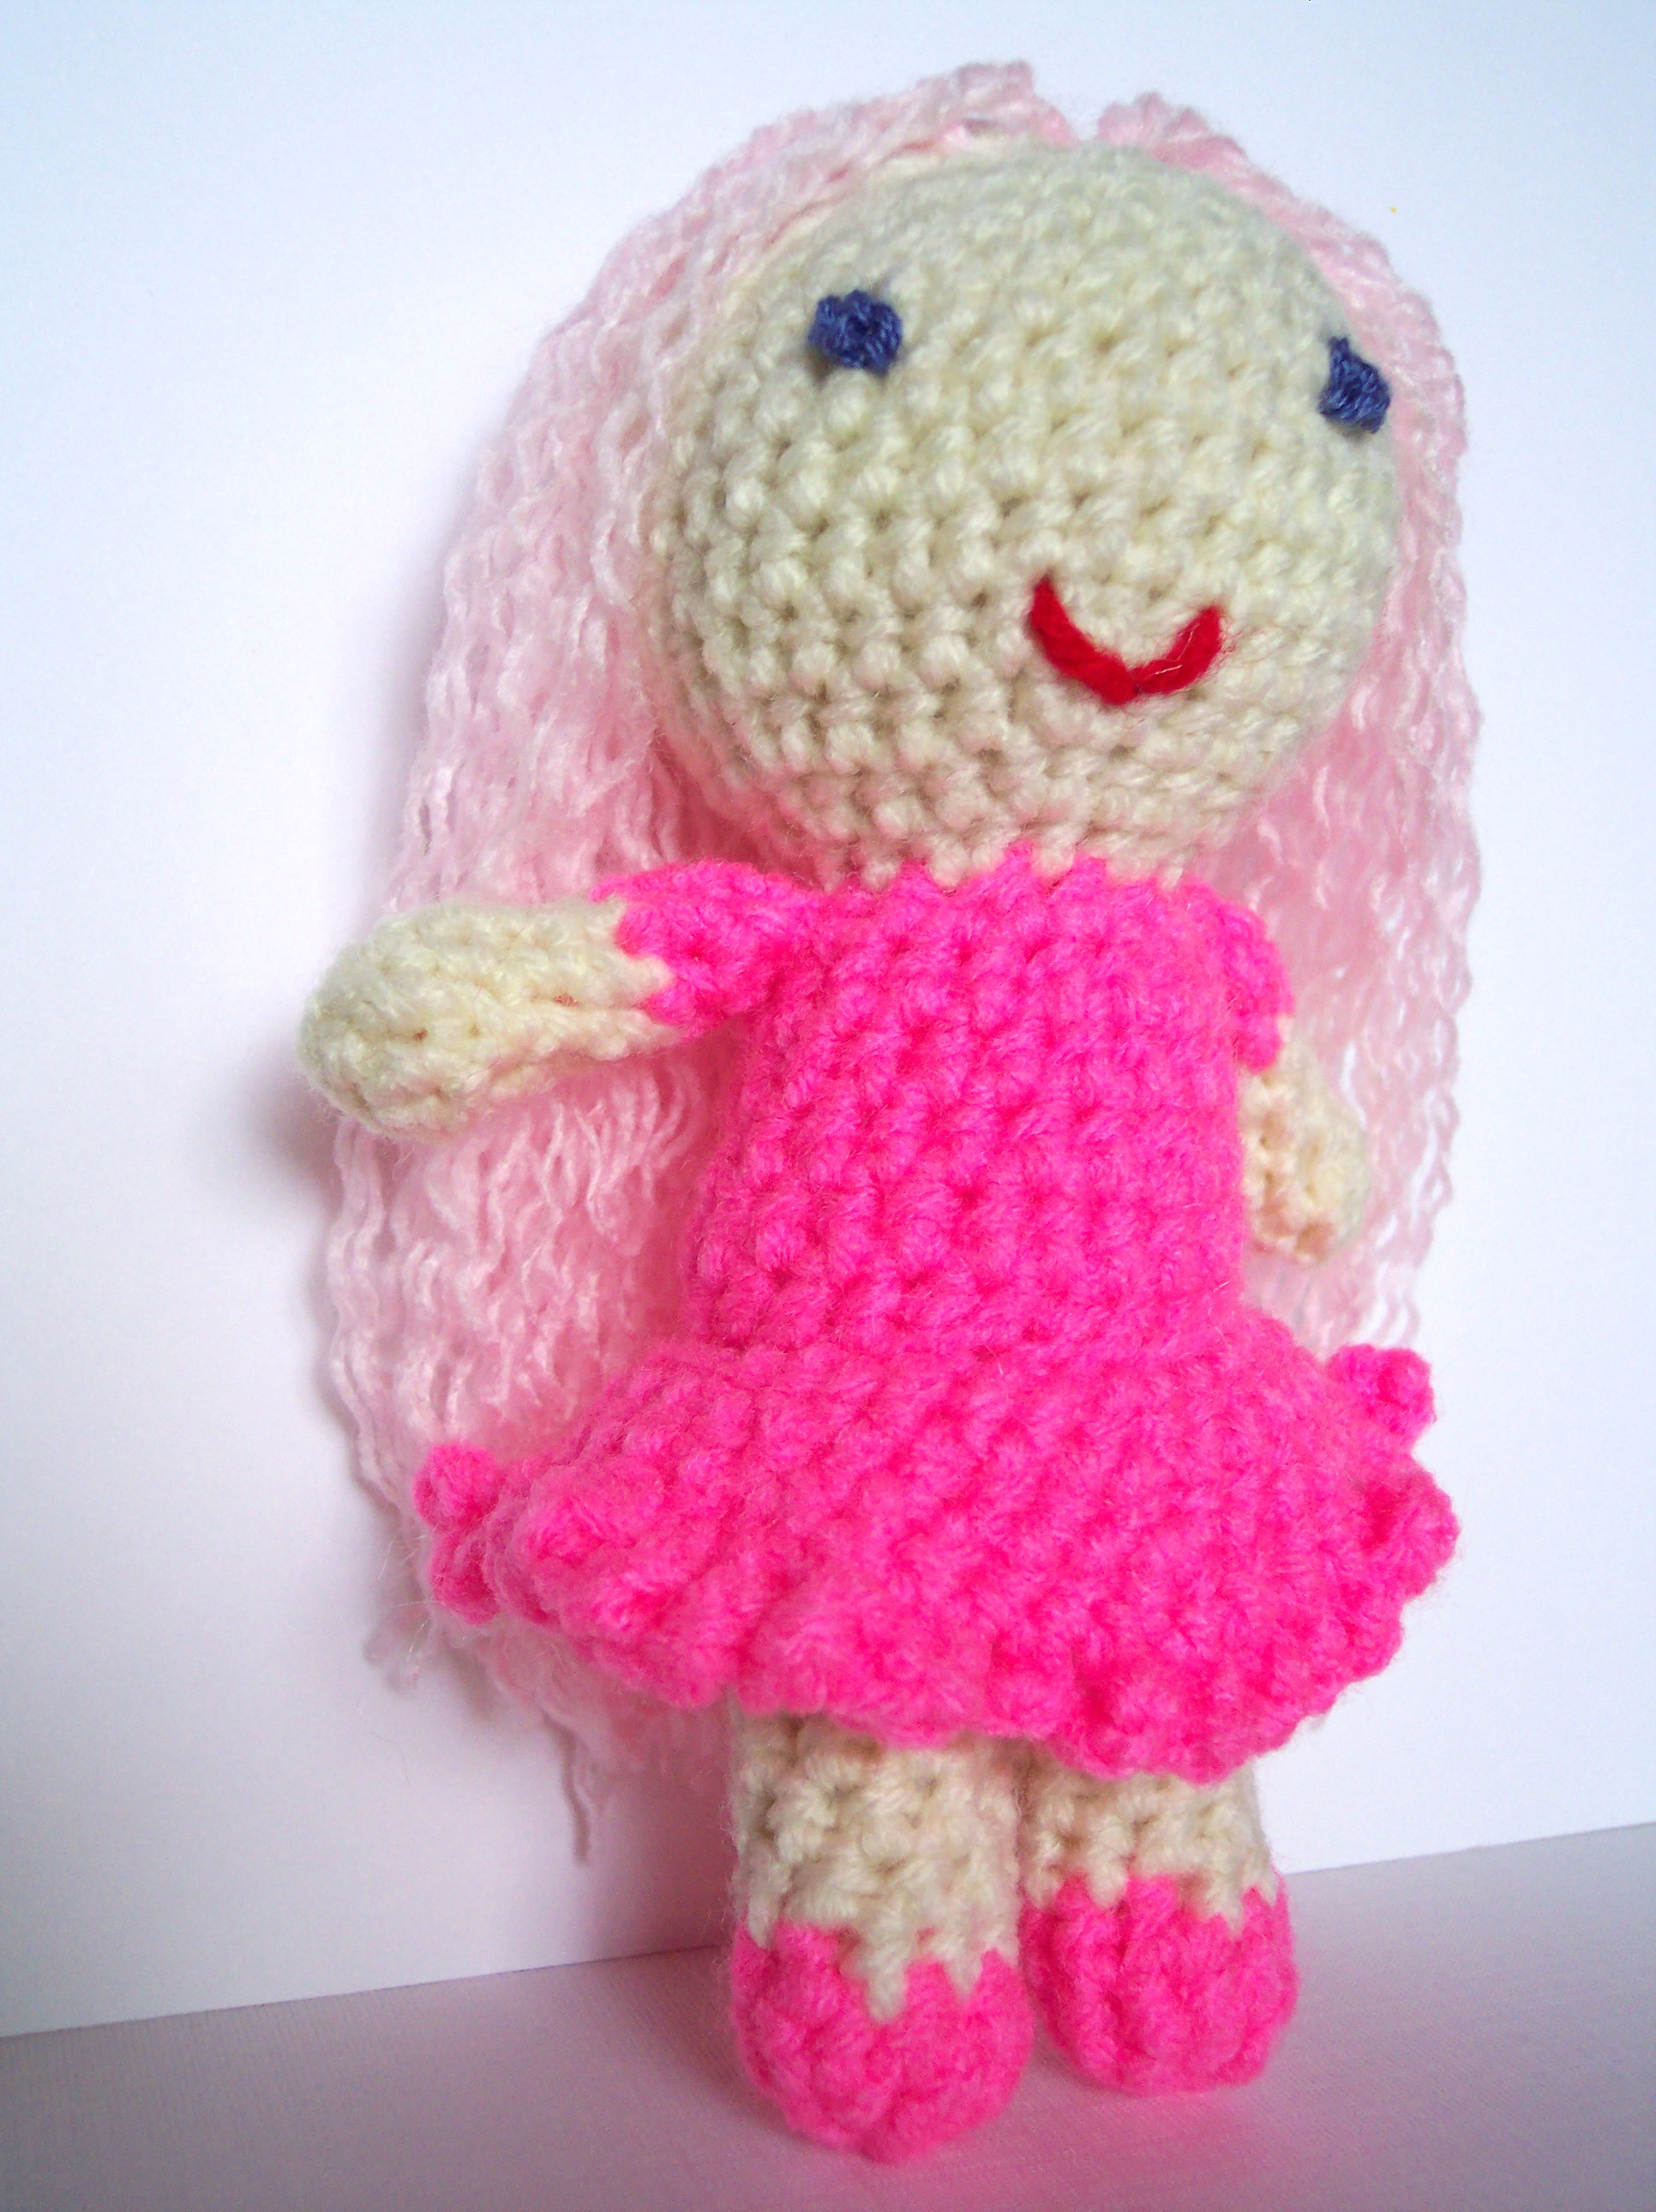 Amigurumi Crochet Ravelry : Another Preschool Birthday Party, Another Crocheted ...